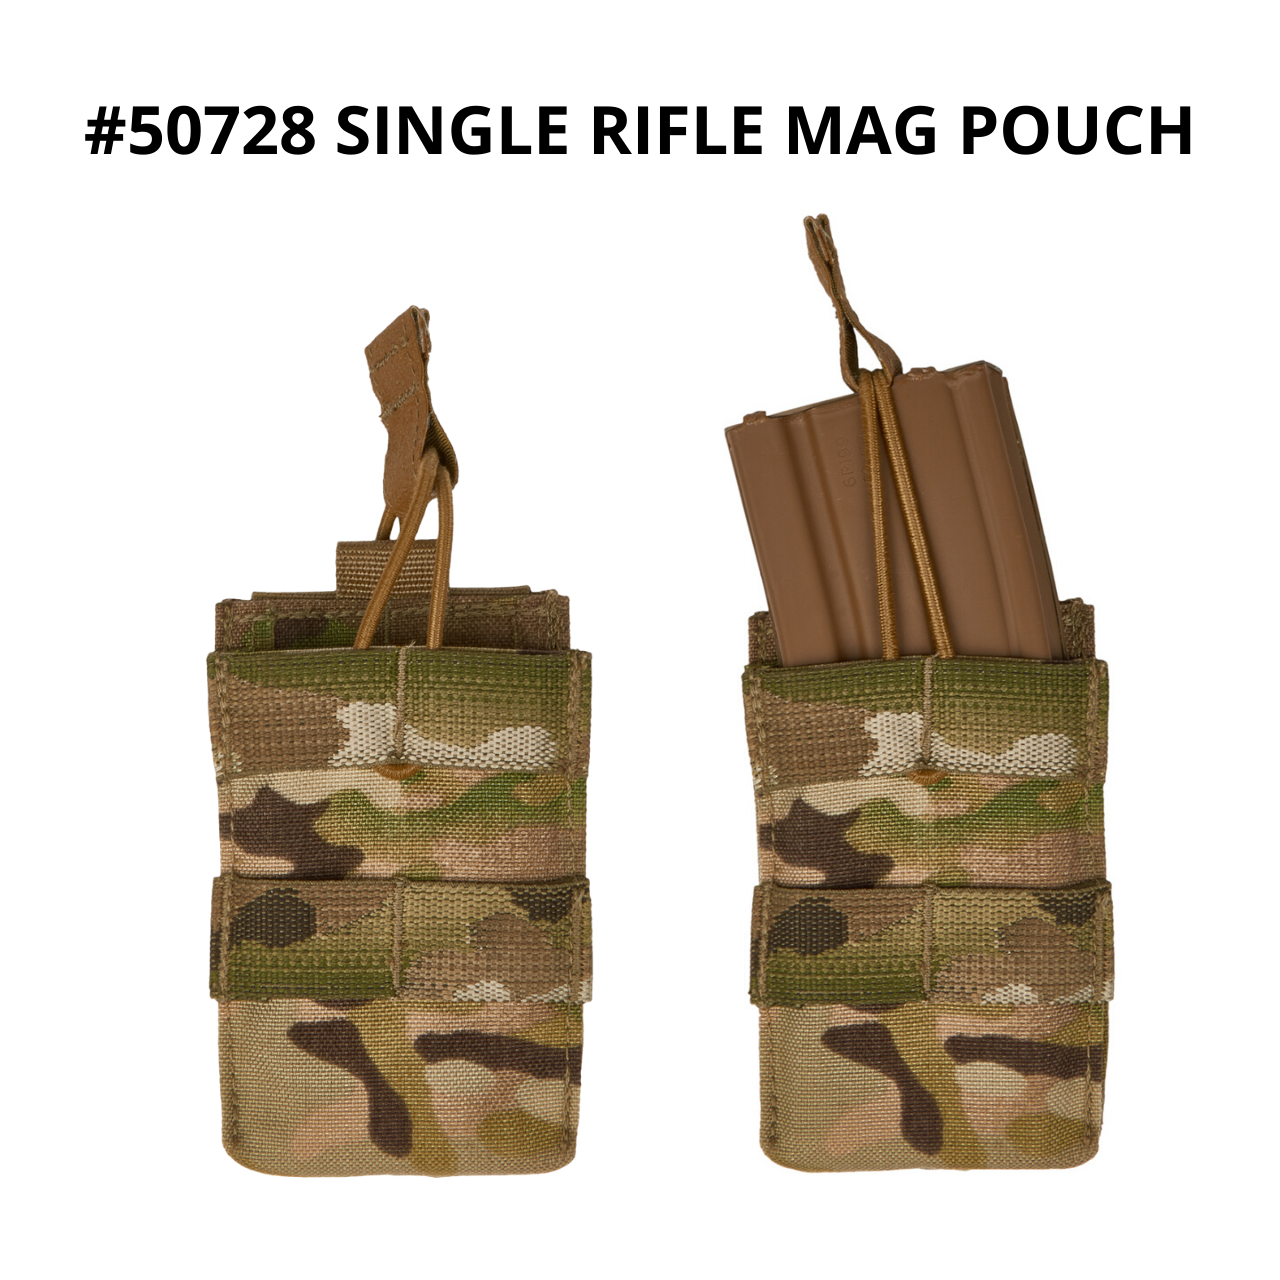 50728 single rifle mag pouch